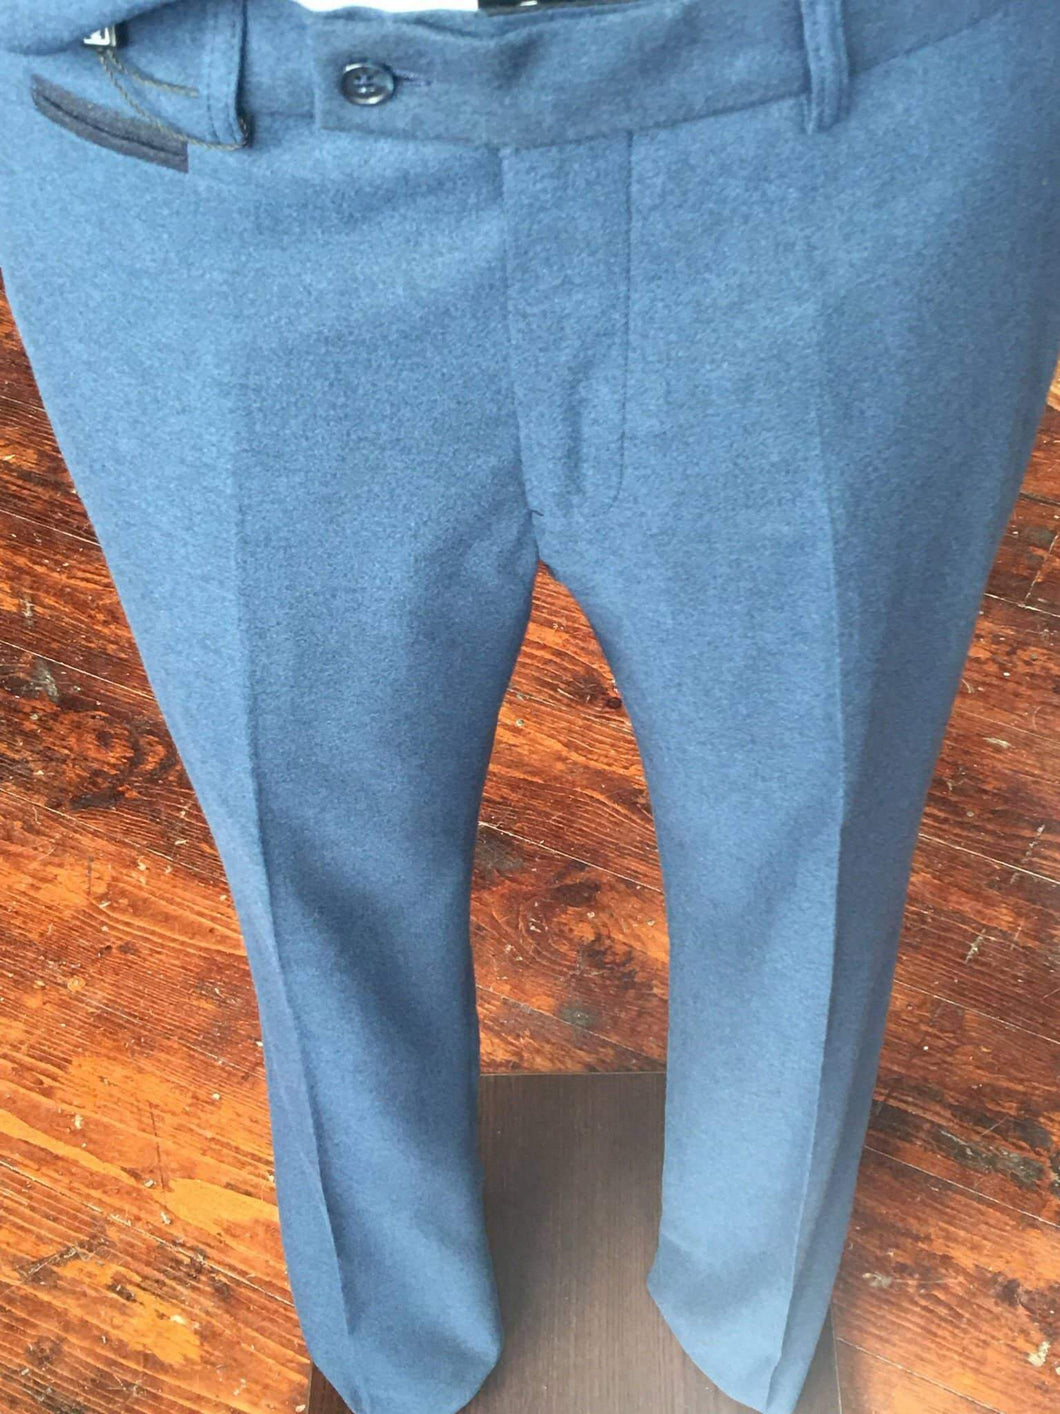 Guide London Classic Soft Touch Suit Trousers - Airforce Blue 30R